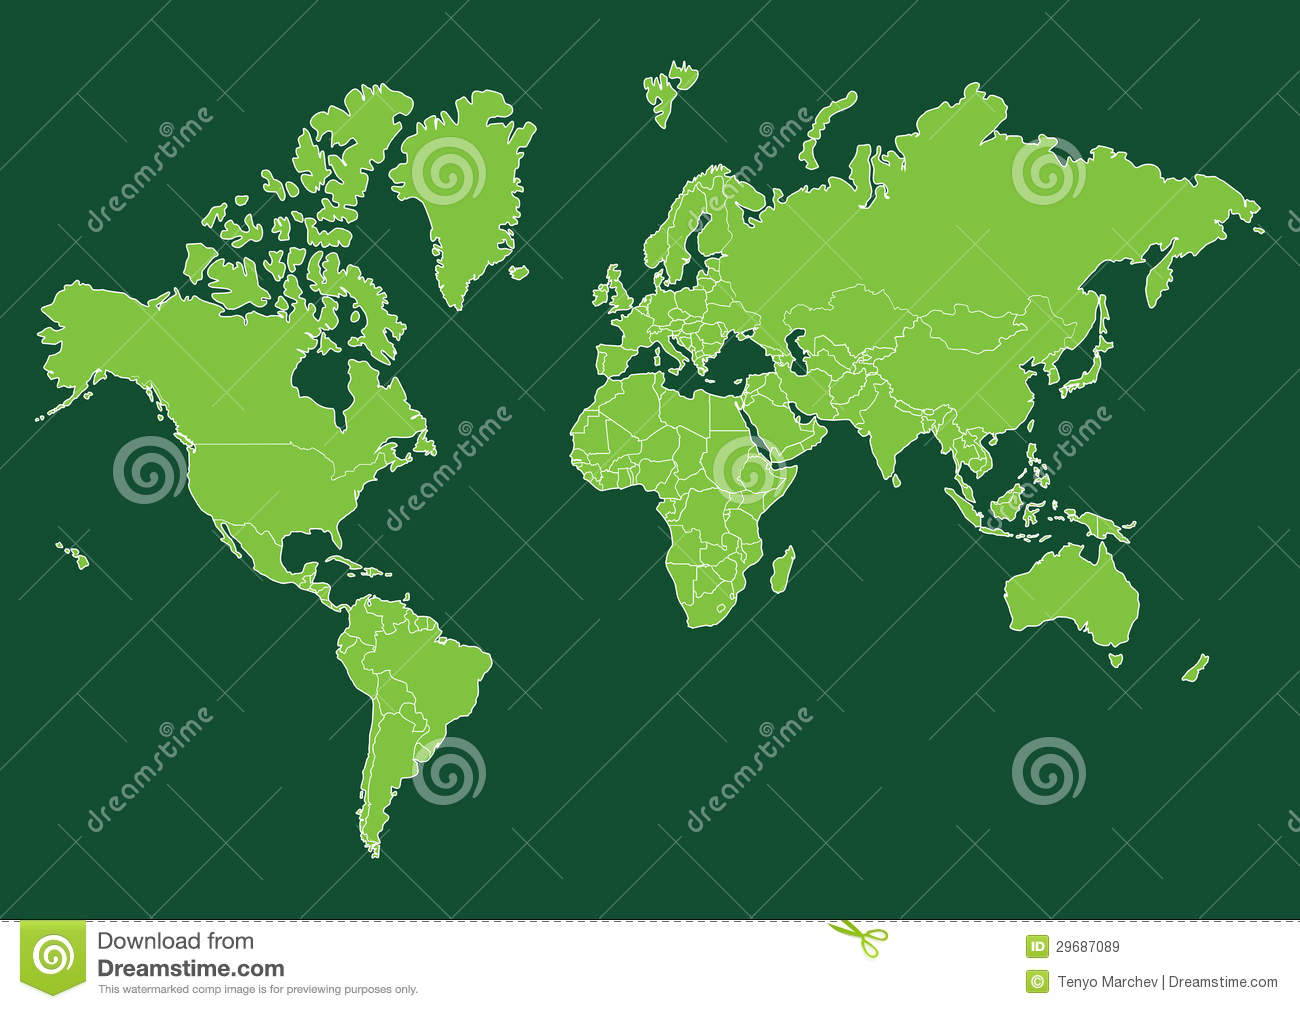 World map with countries stock vector illustration of globe 29687089 download comp gumiabroncs Choice Image